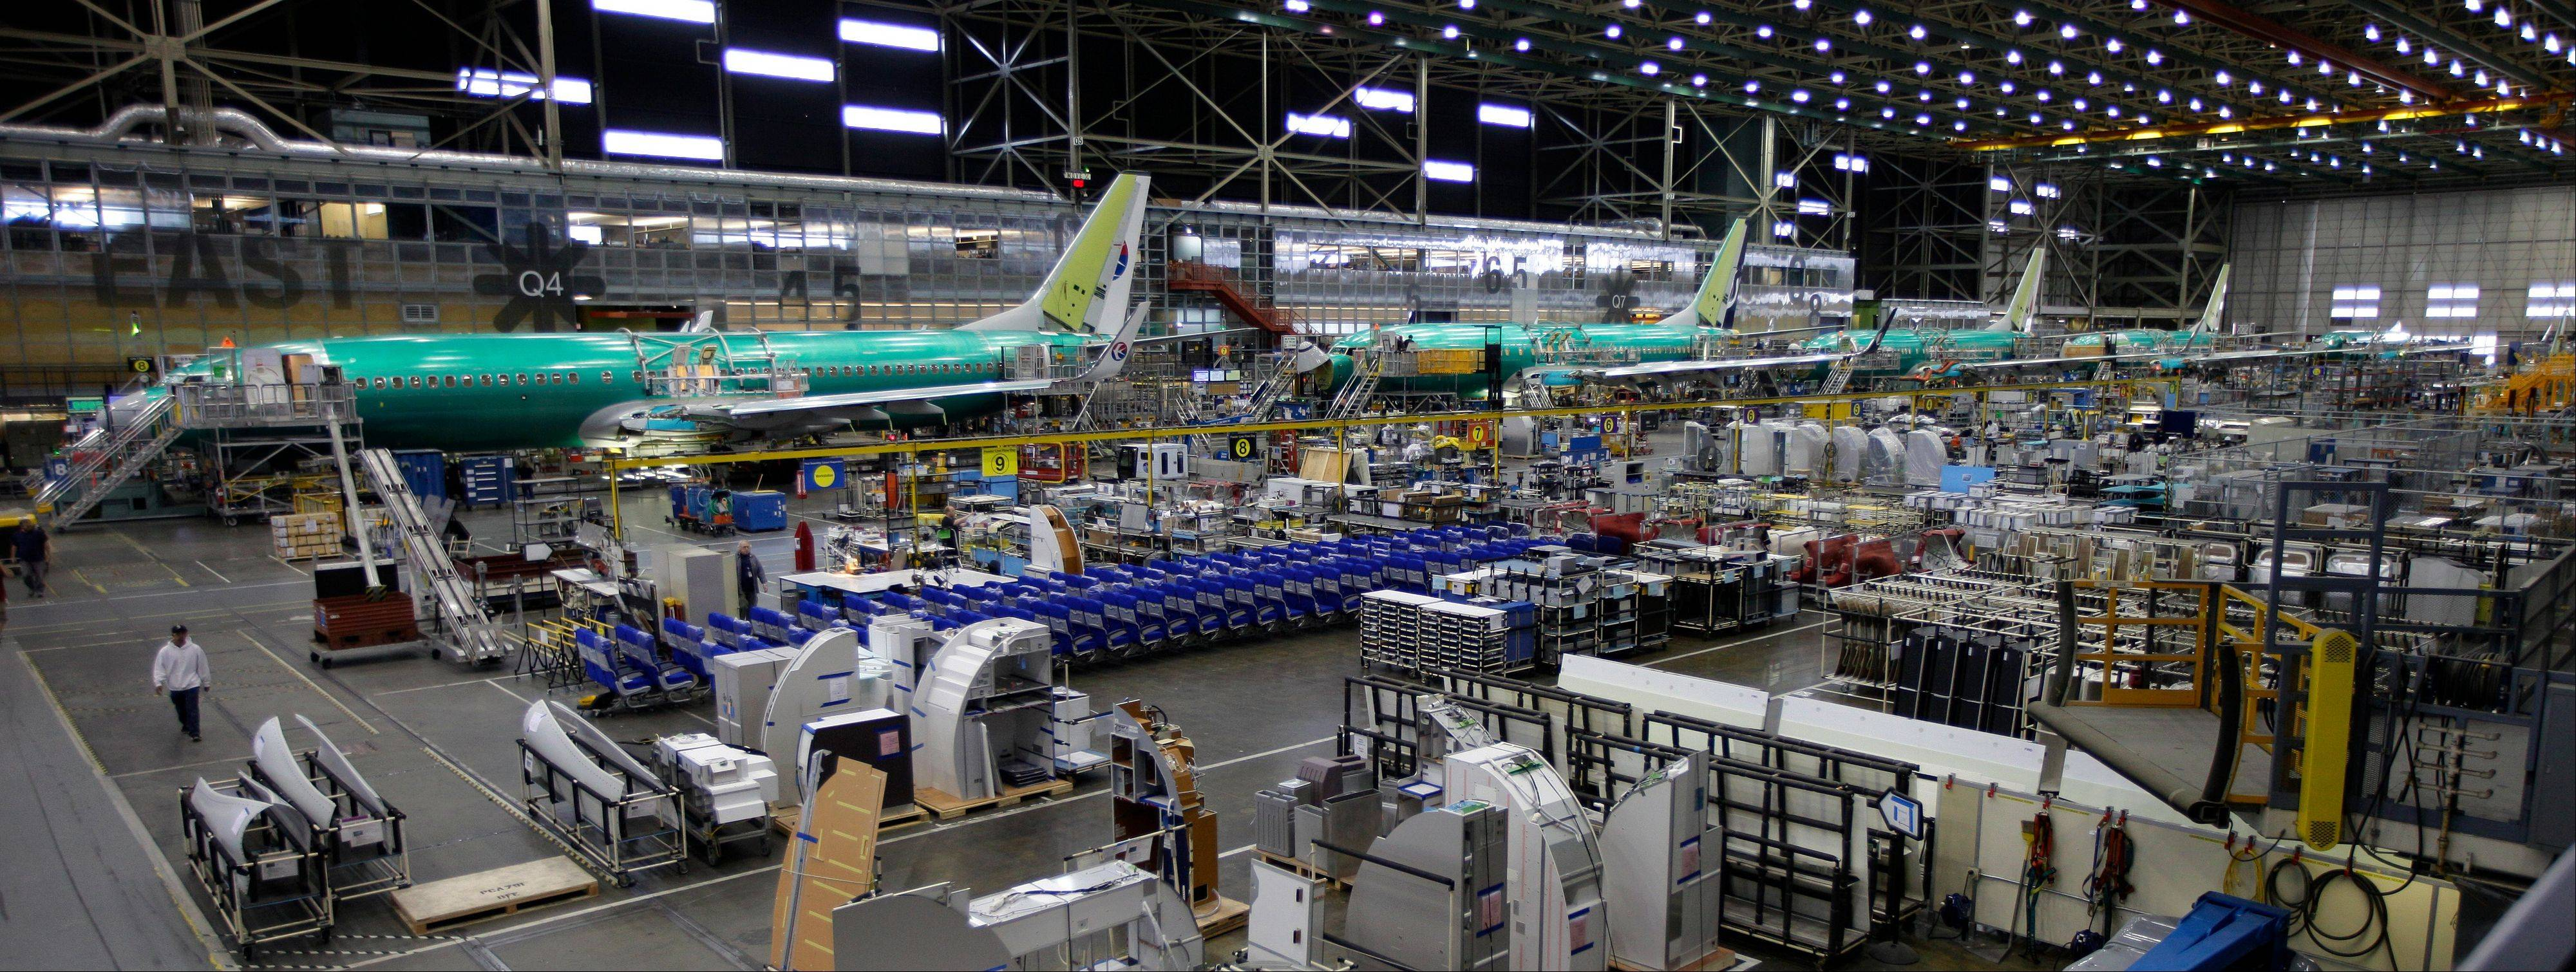 ASSOCIATED PRESS The Boeing 737 assembly line in Renton, Wash., is seen here. Boeing opened the Farnborough Airshow Monday by announcing the sale to Air Lease Corp. of 75 of its 737 aircraft for a total of $7.2 billion, at least at sticker price.